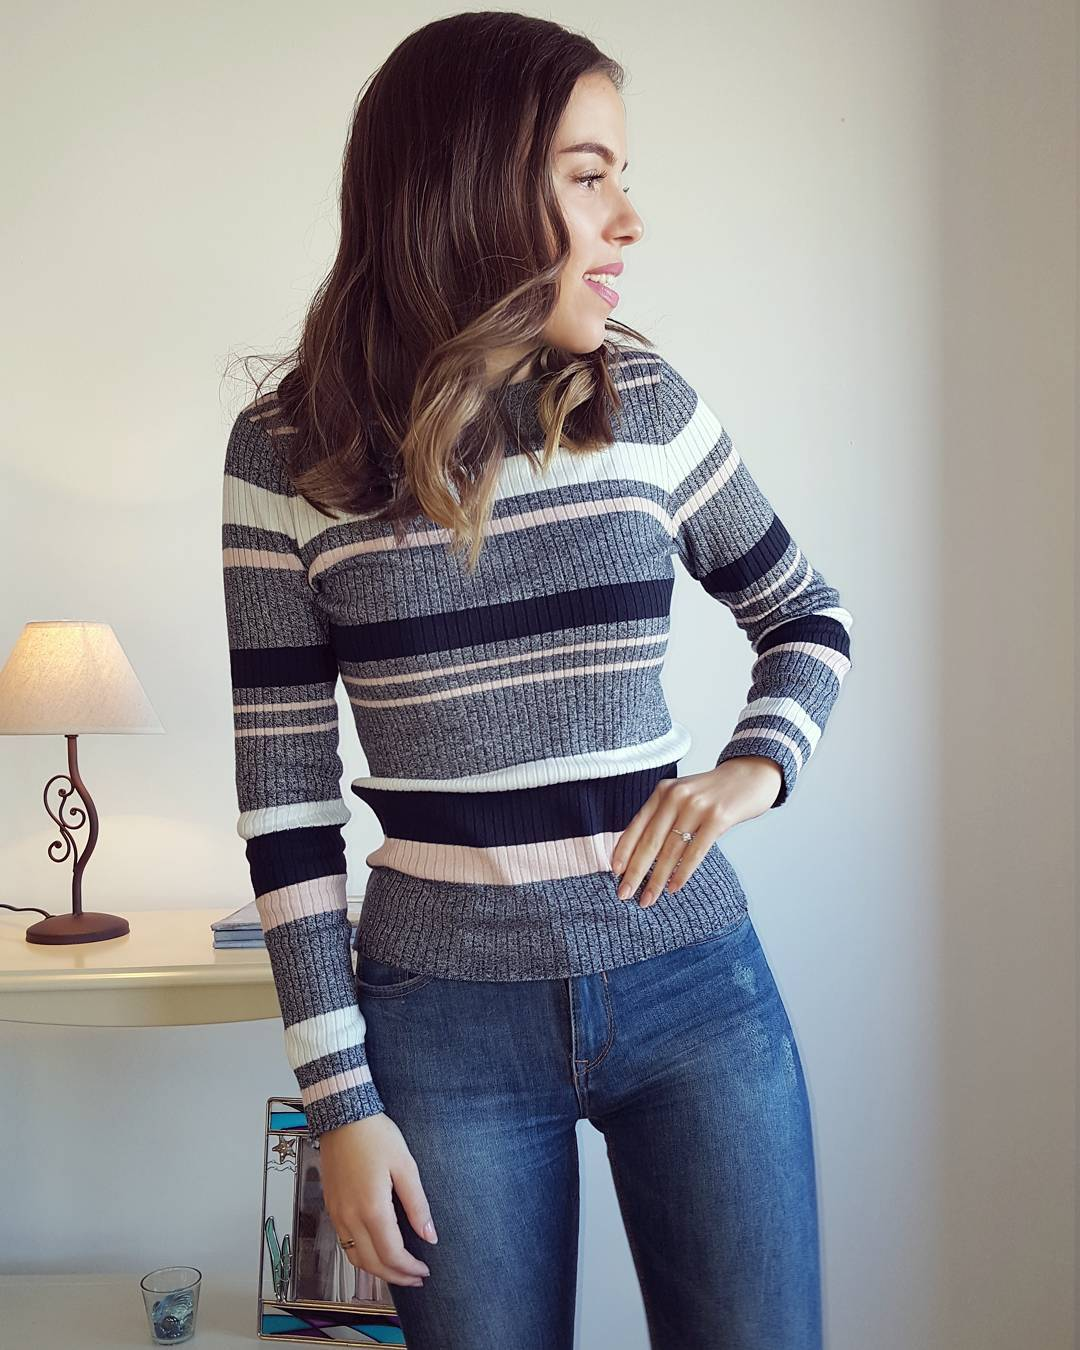 Simple Stripes Sweater With Blue Denim Jeans